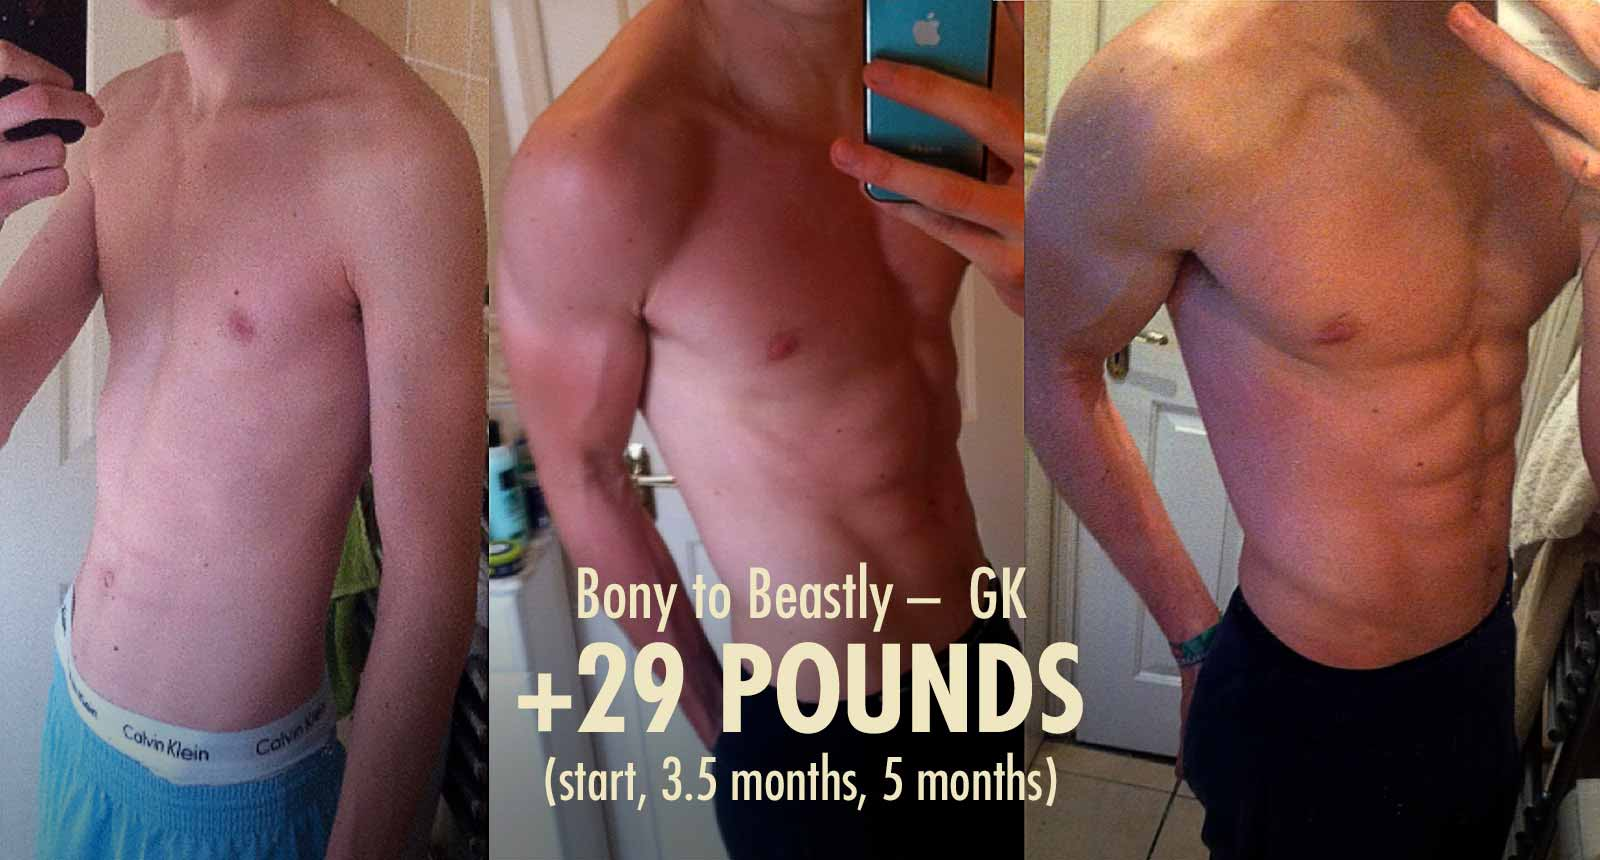 Photo showing a skinny ectomorph bulking up and becoming muscular from doing the Bony to Beastly Program.